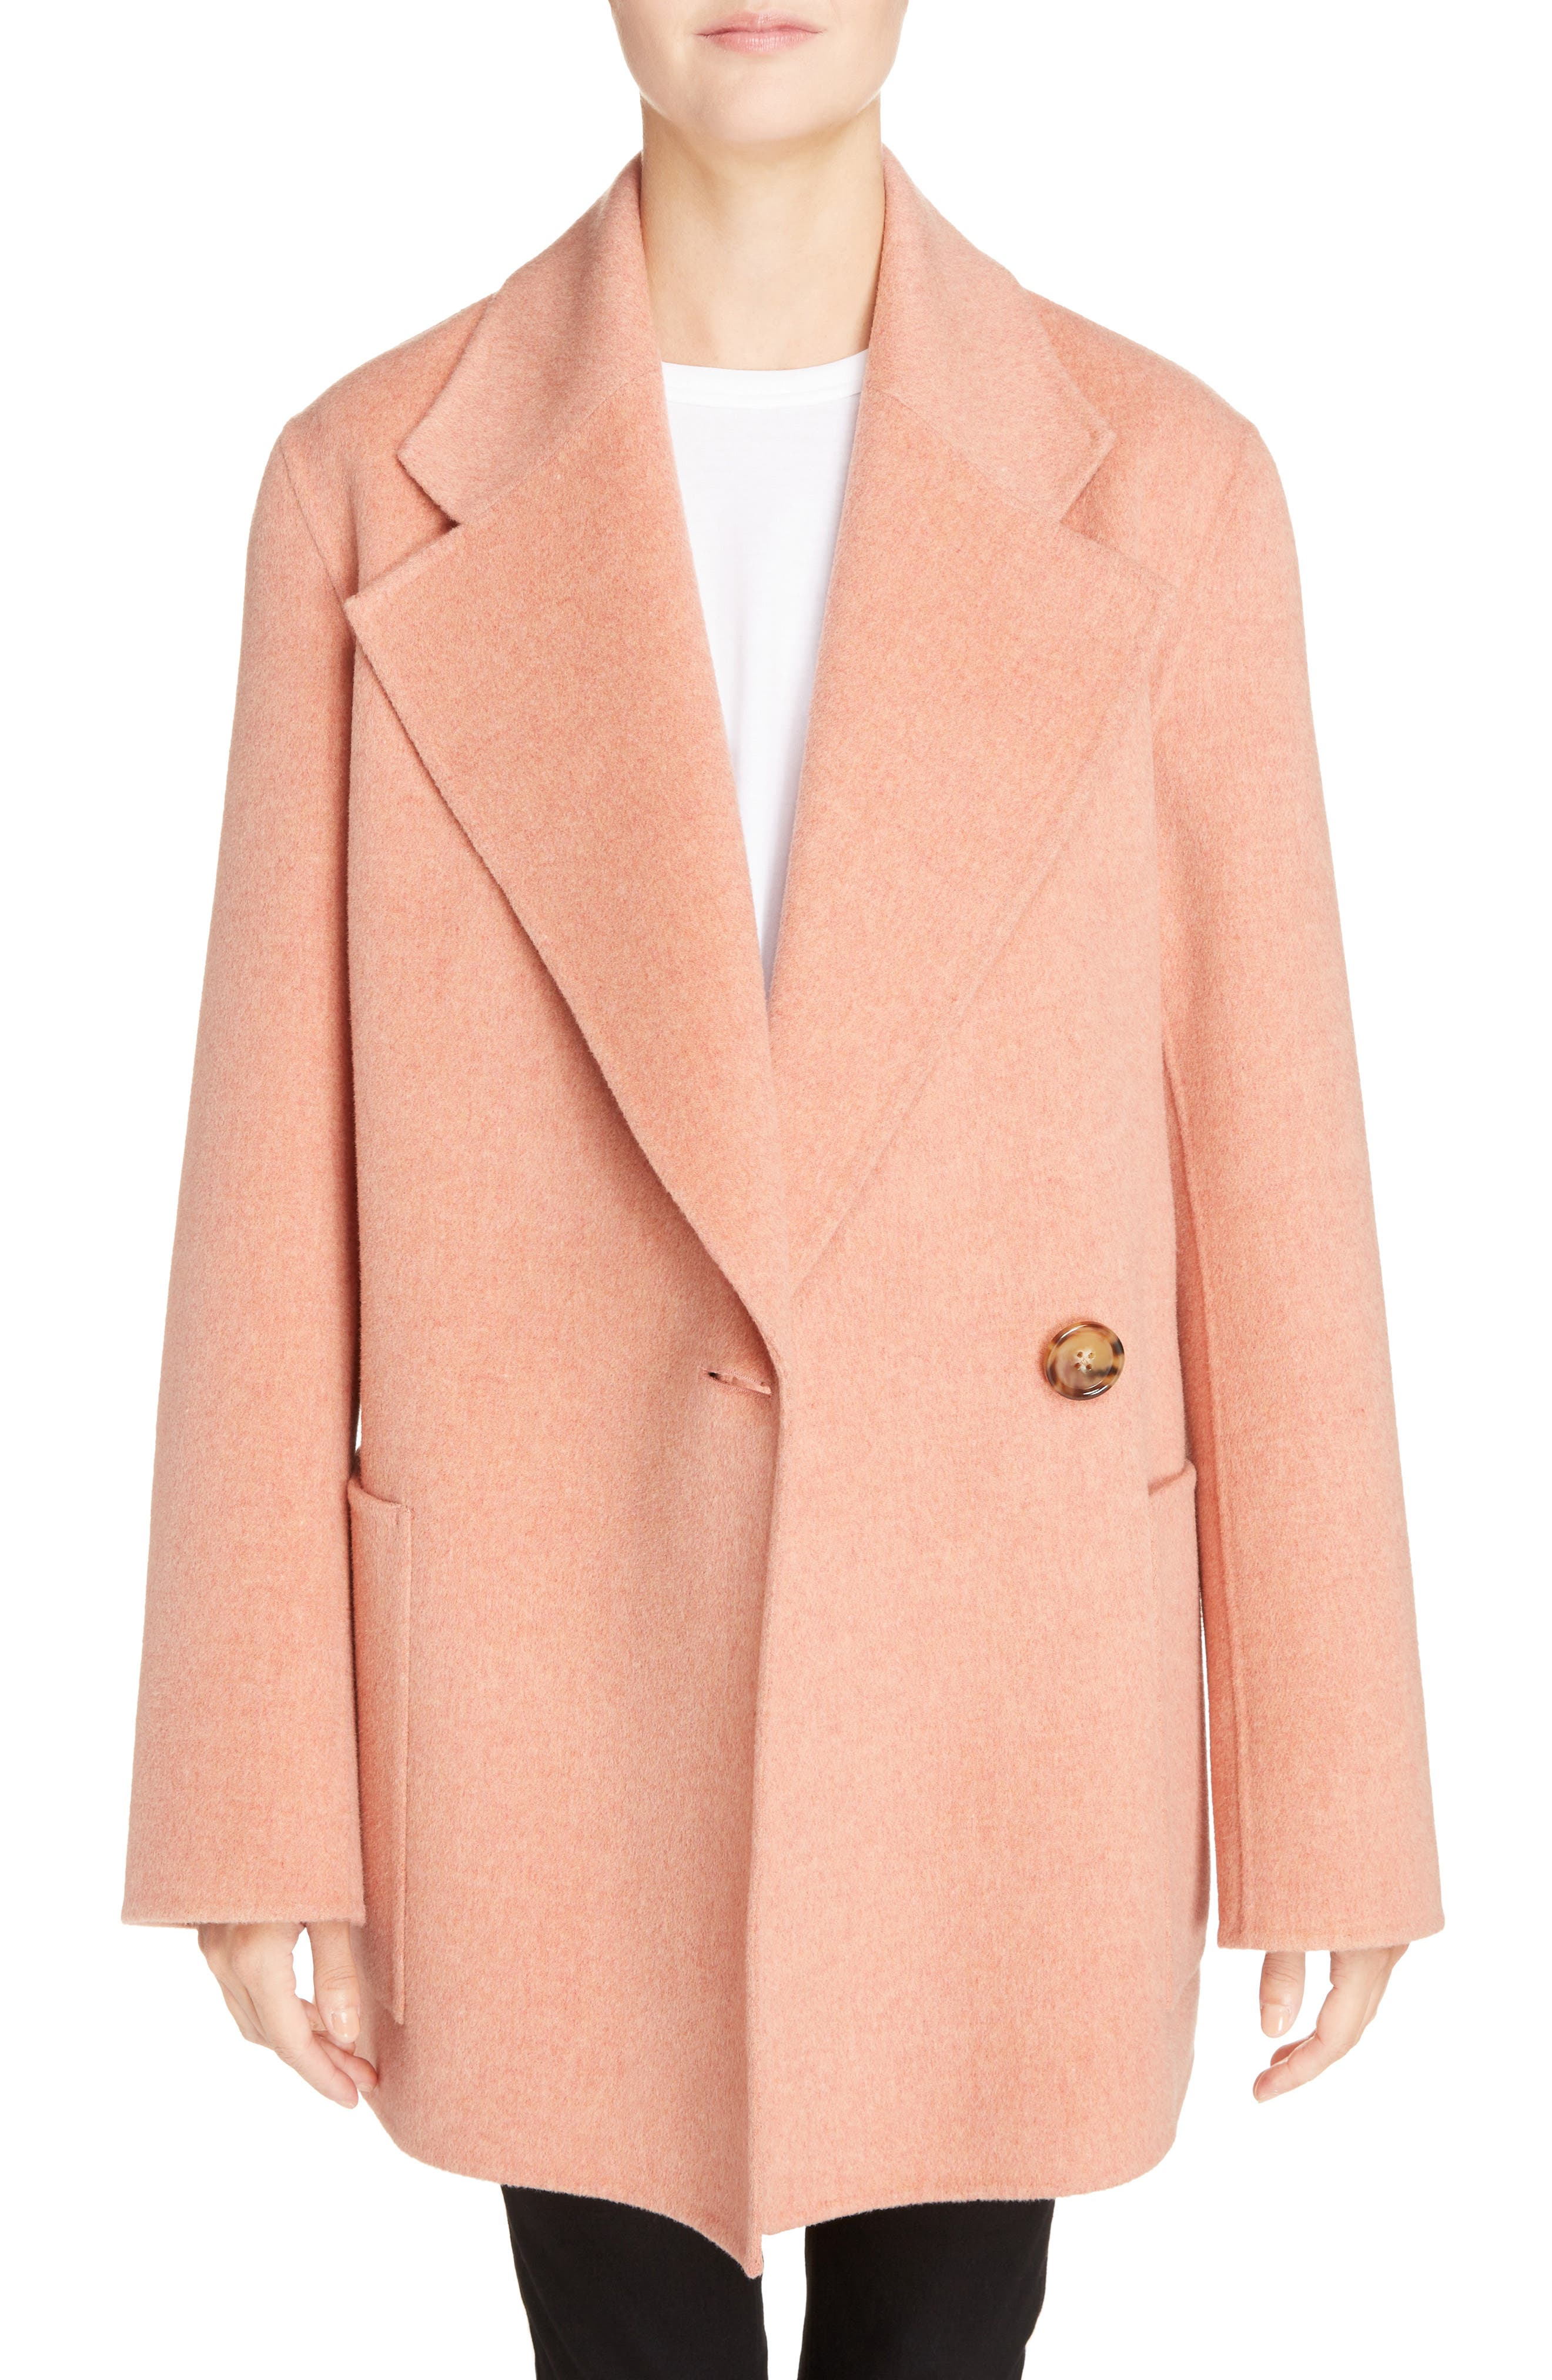 Anika Doublé Wool & Cashmere Coat,                         Main,                         color, Rose Melange